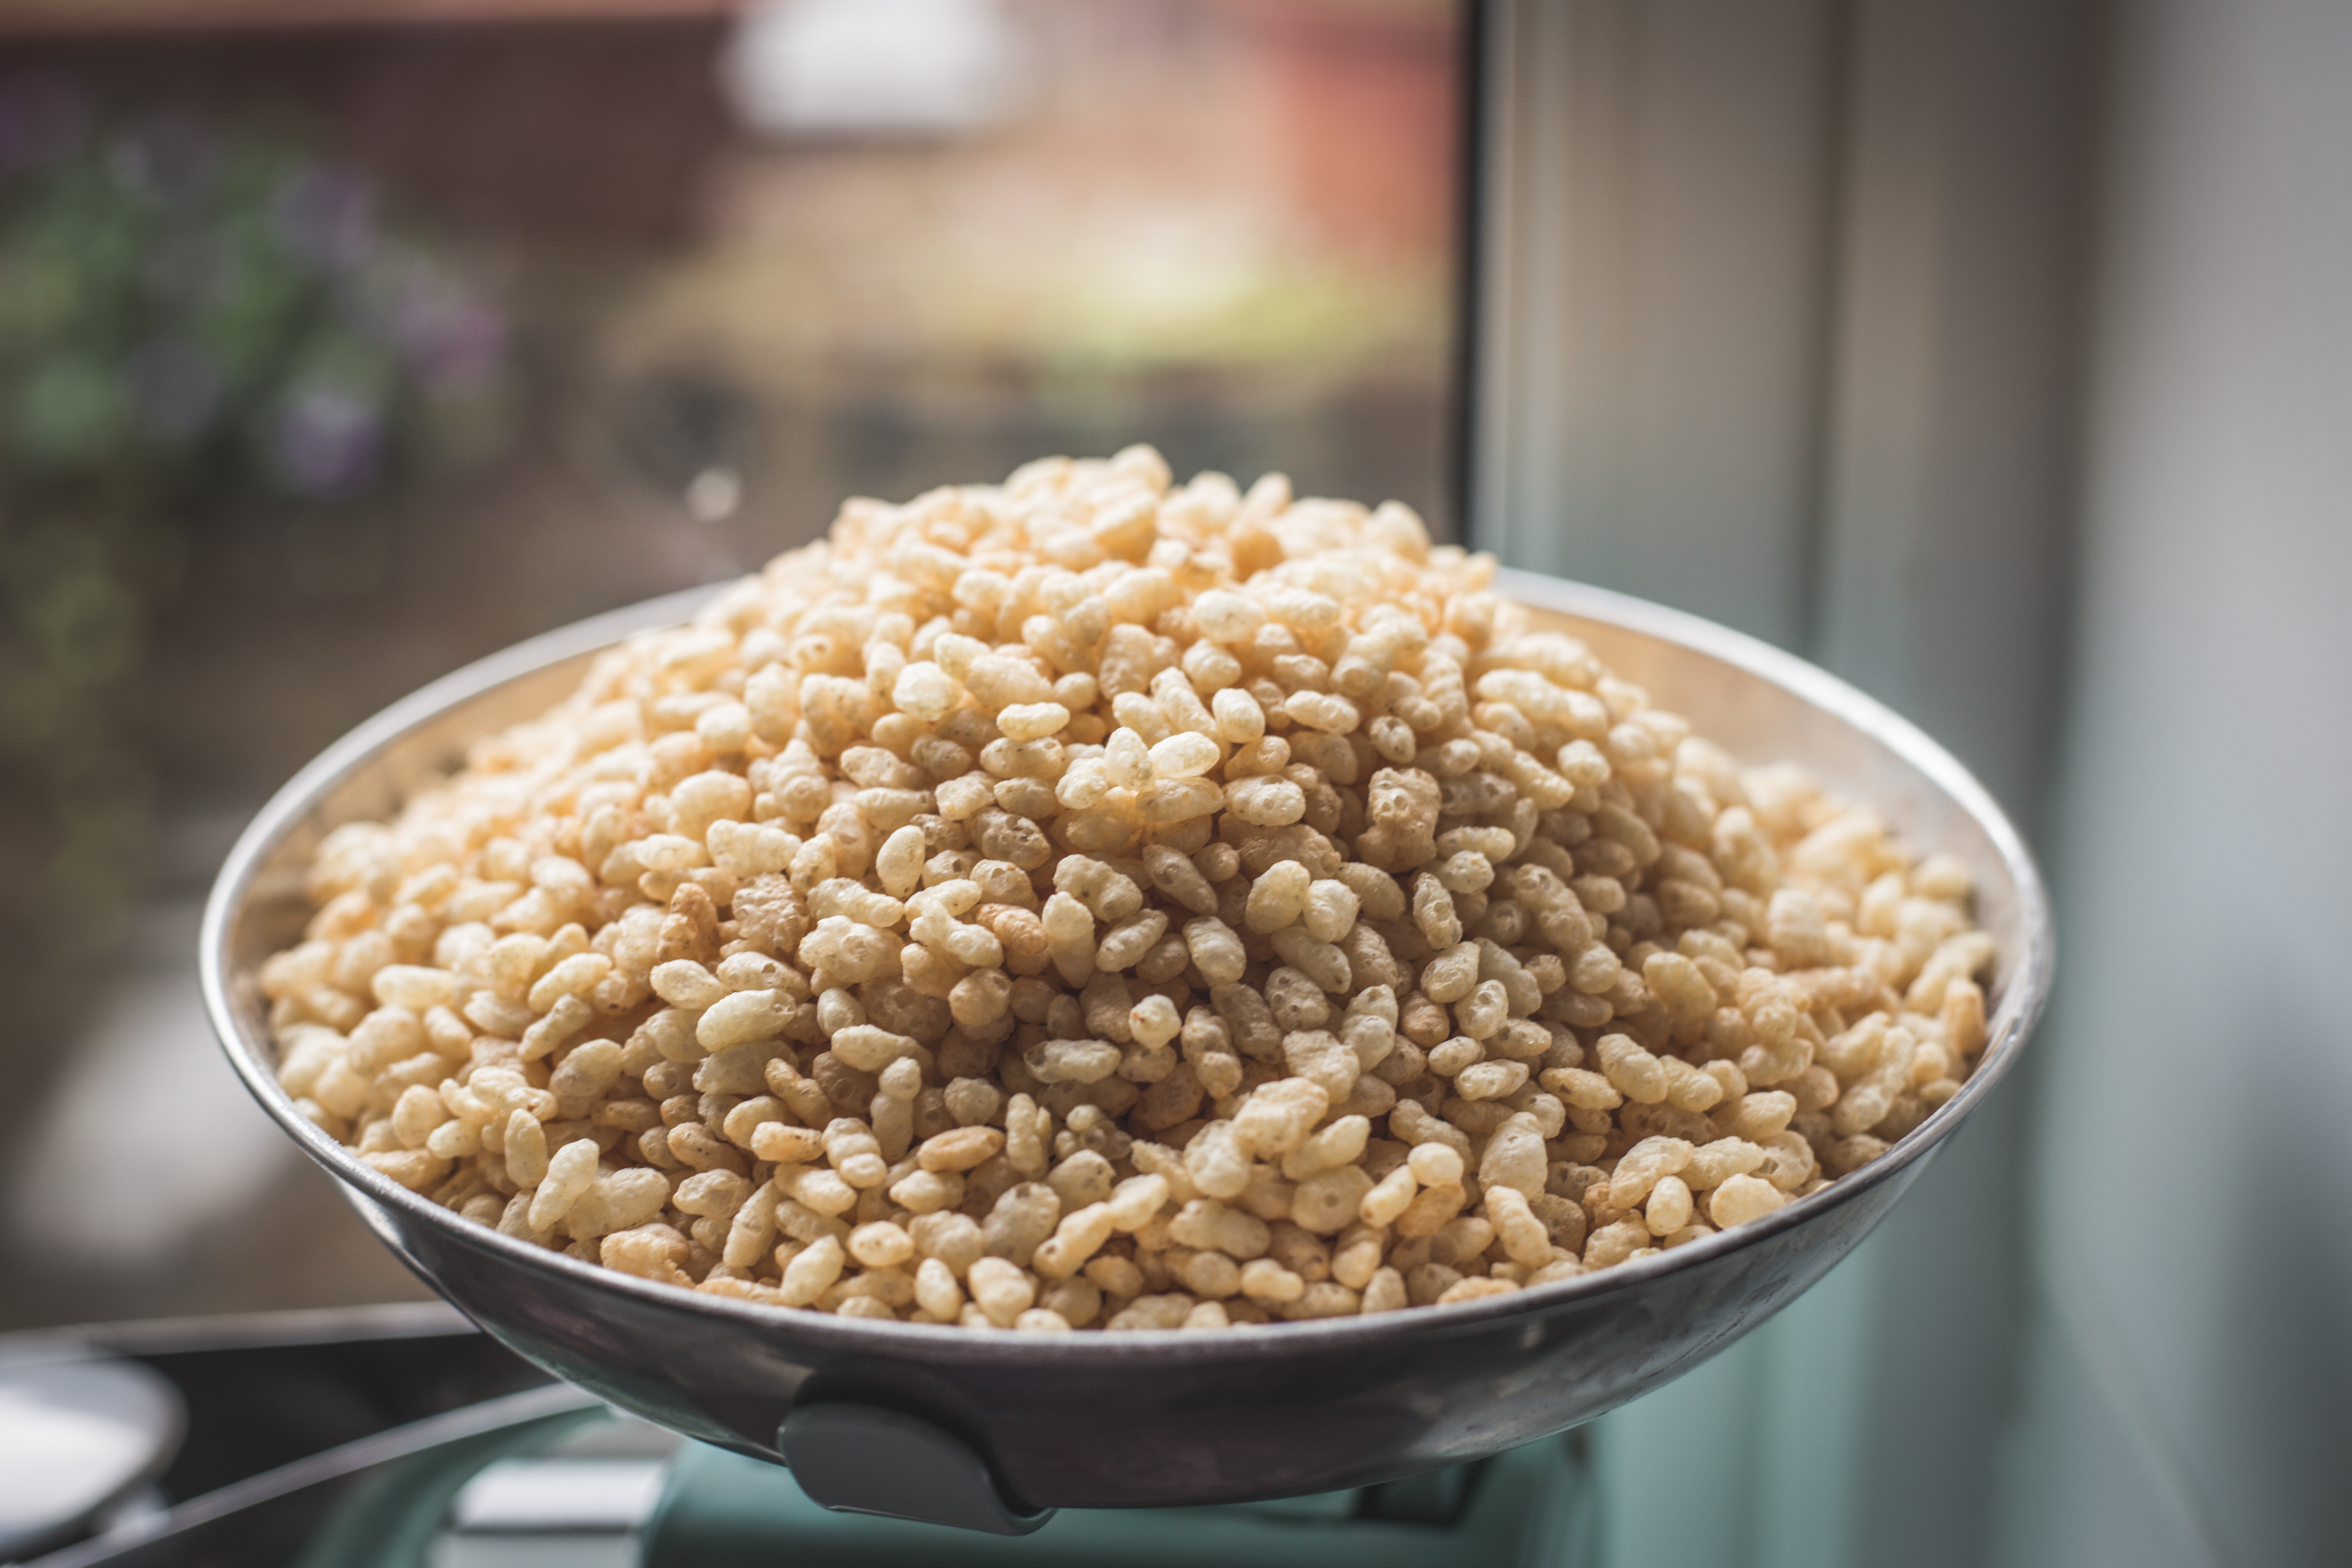 Recipes homemade rice krispie treats without marshmallows what are your feelings about rice krispie treats yay or nay ccuart Choice Image